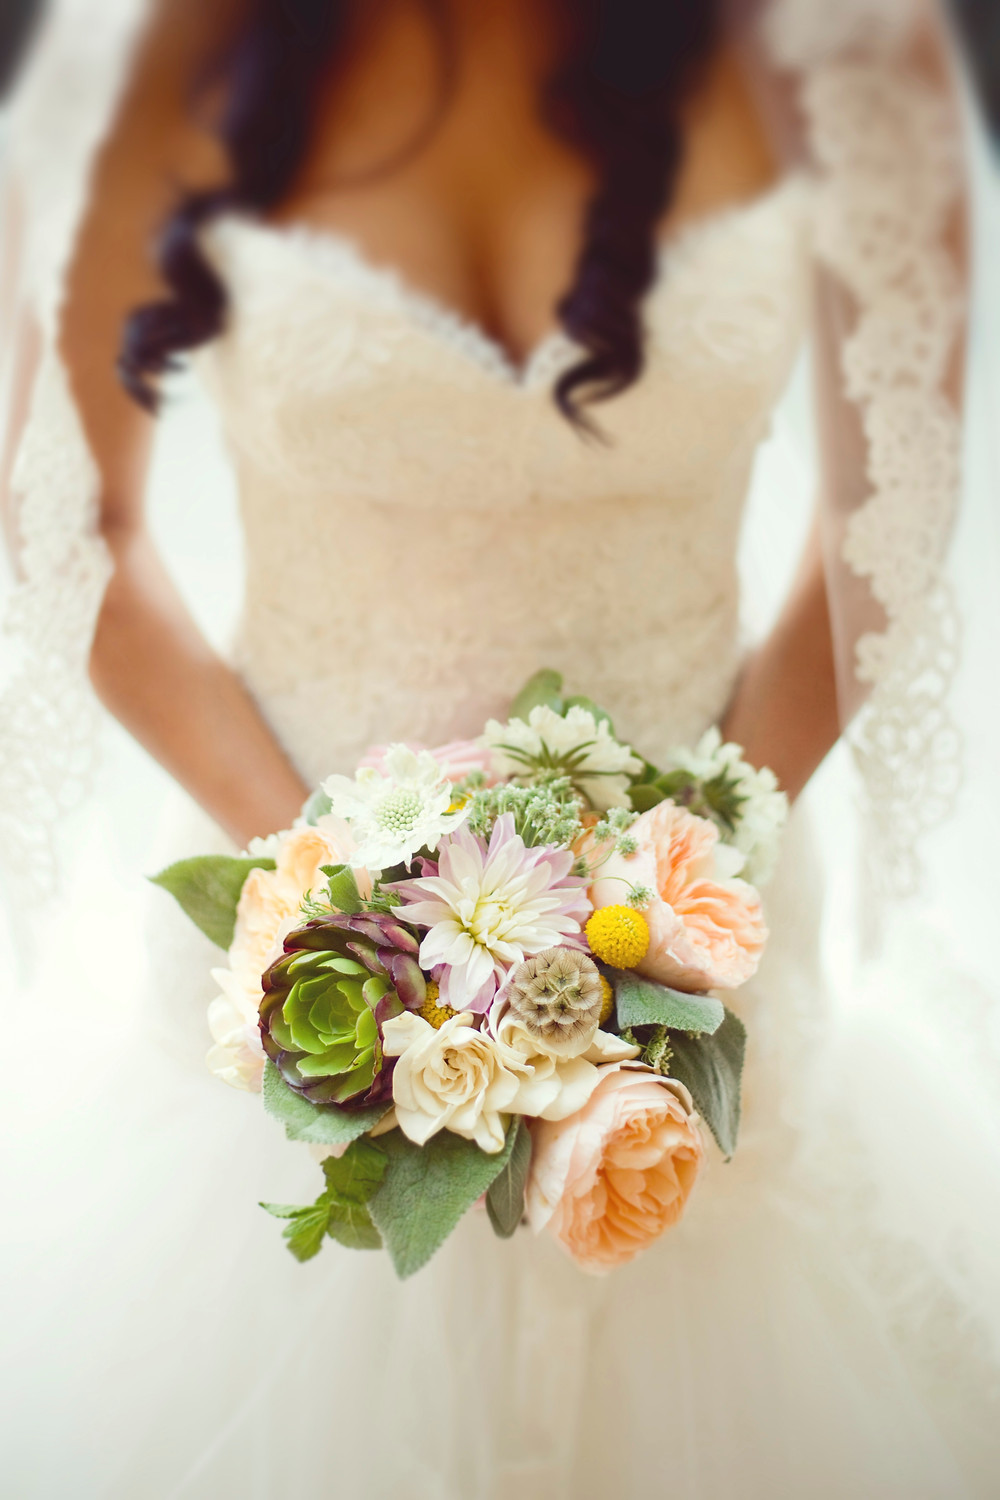 A bride wearing a lace and tulle Lazaro wedding dress is holding a bouquet of garden flowers on her wedding day.